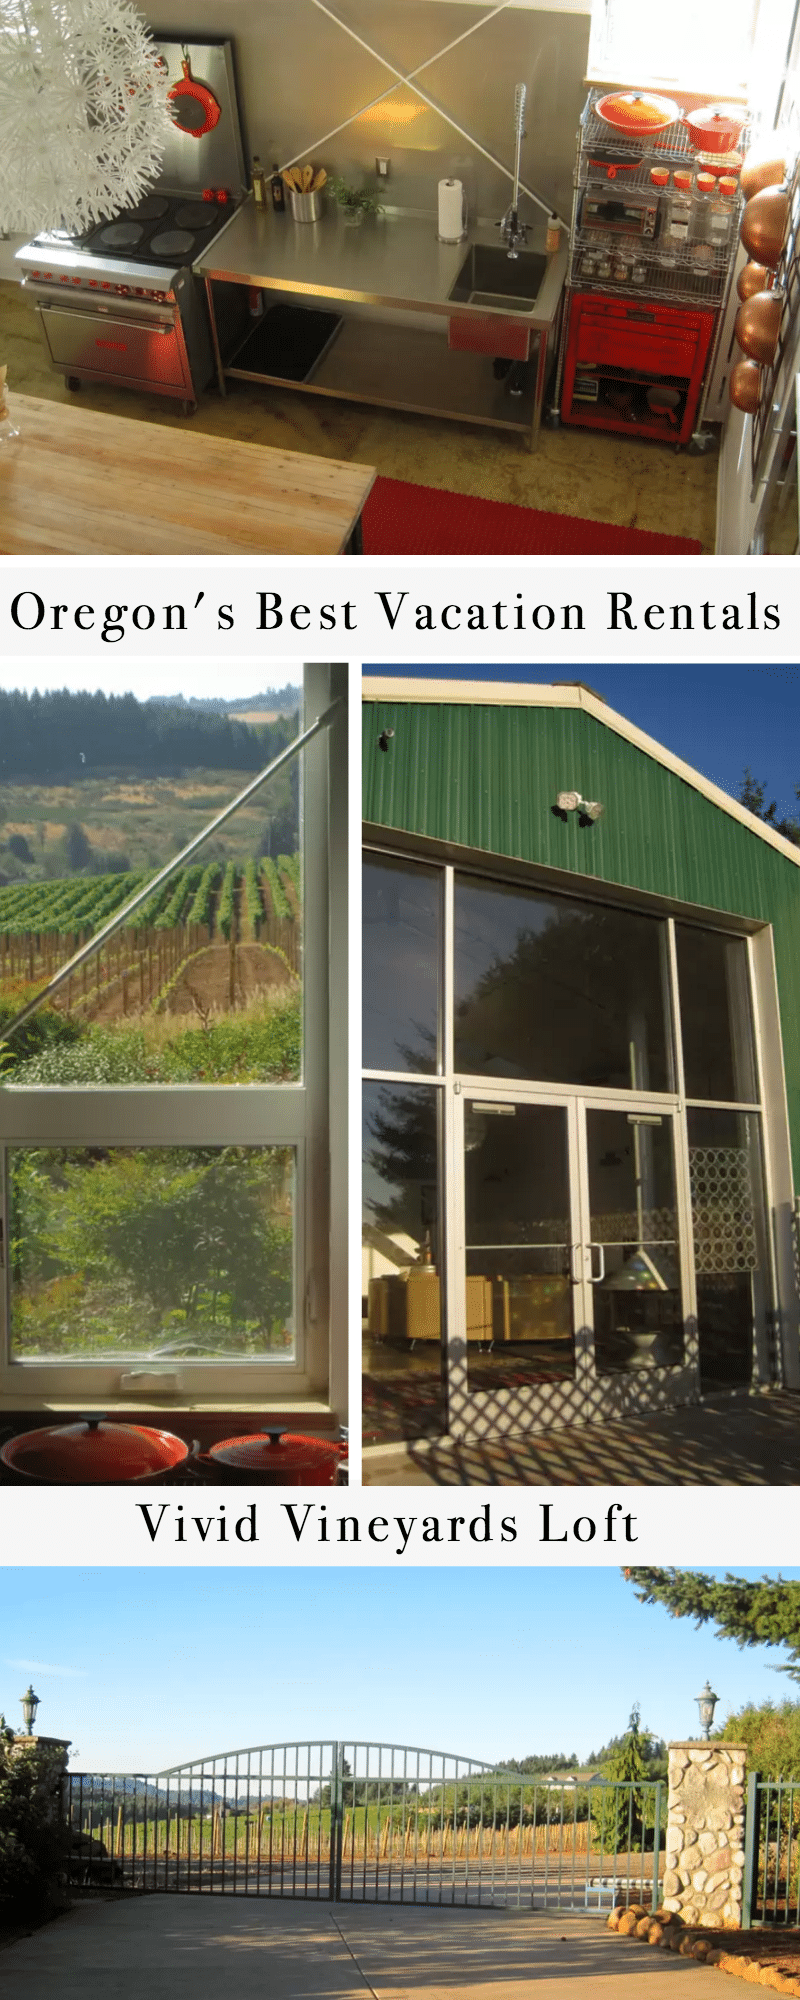 Oregon's Best Vacation Rentals: Vivid Vineyards Loft